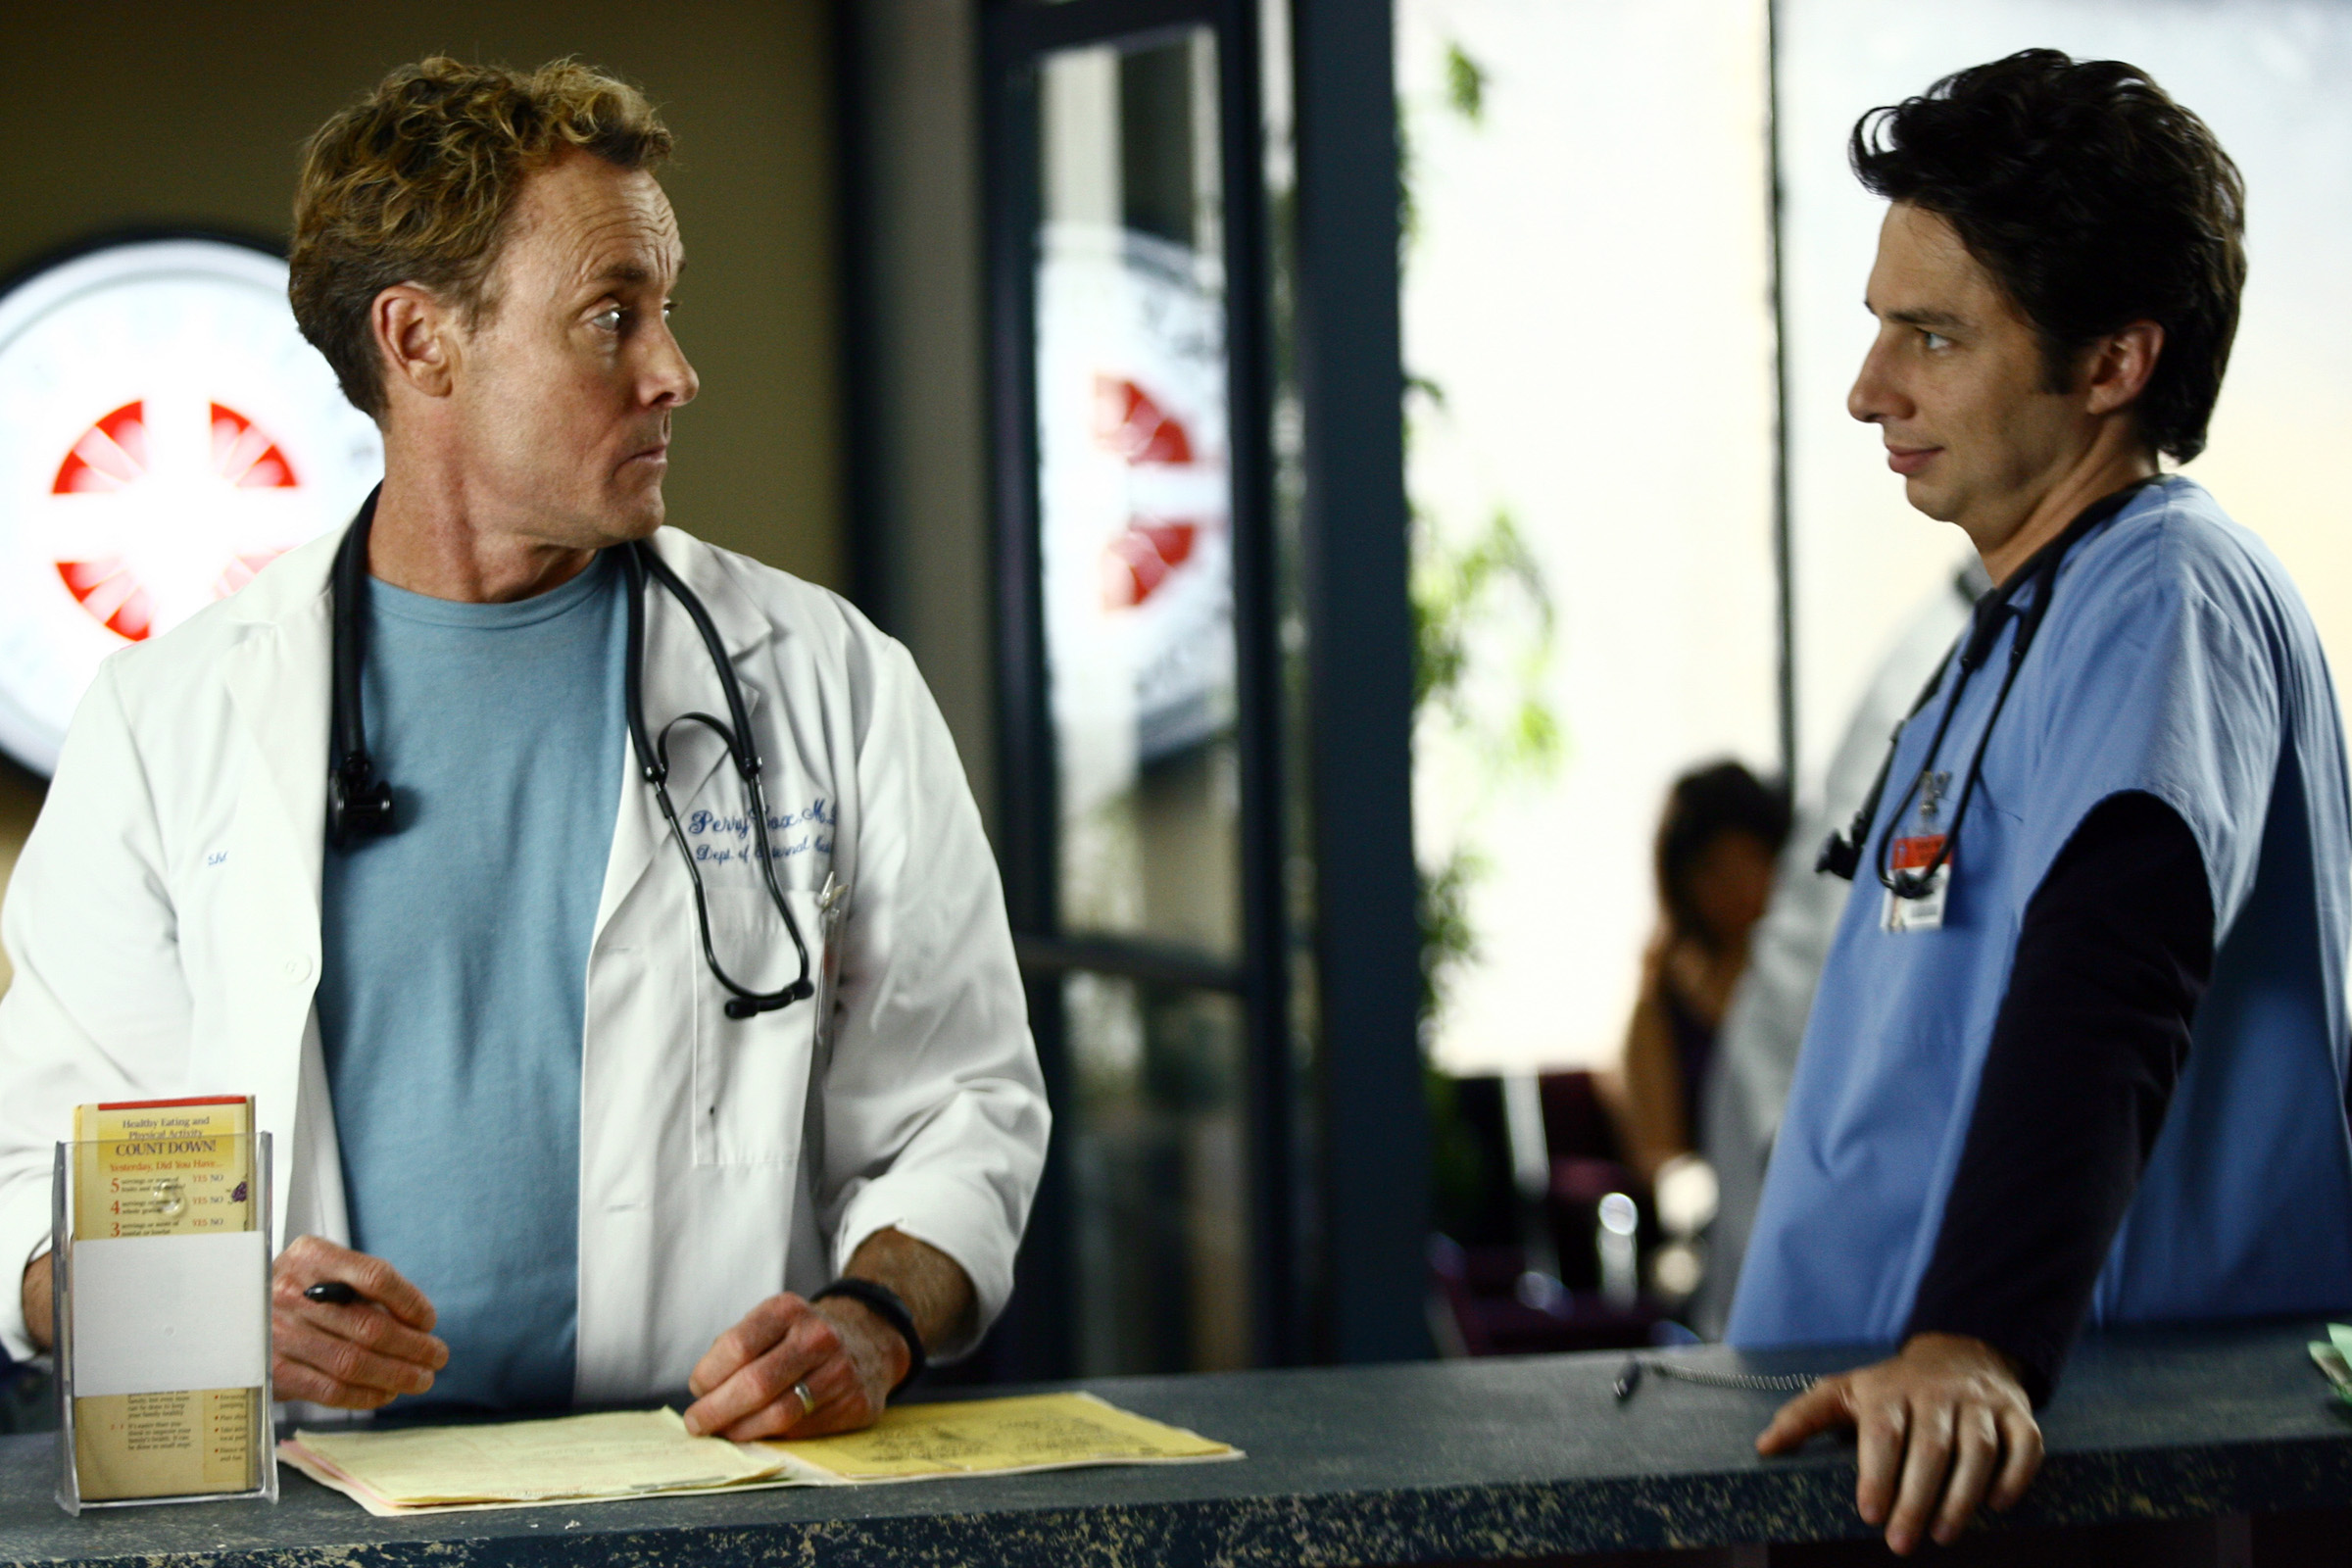 Scrubs, Zach Braff, John C. McGinley, stethoscopes - desktop wallpaper